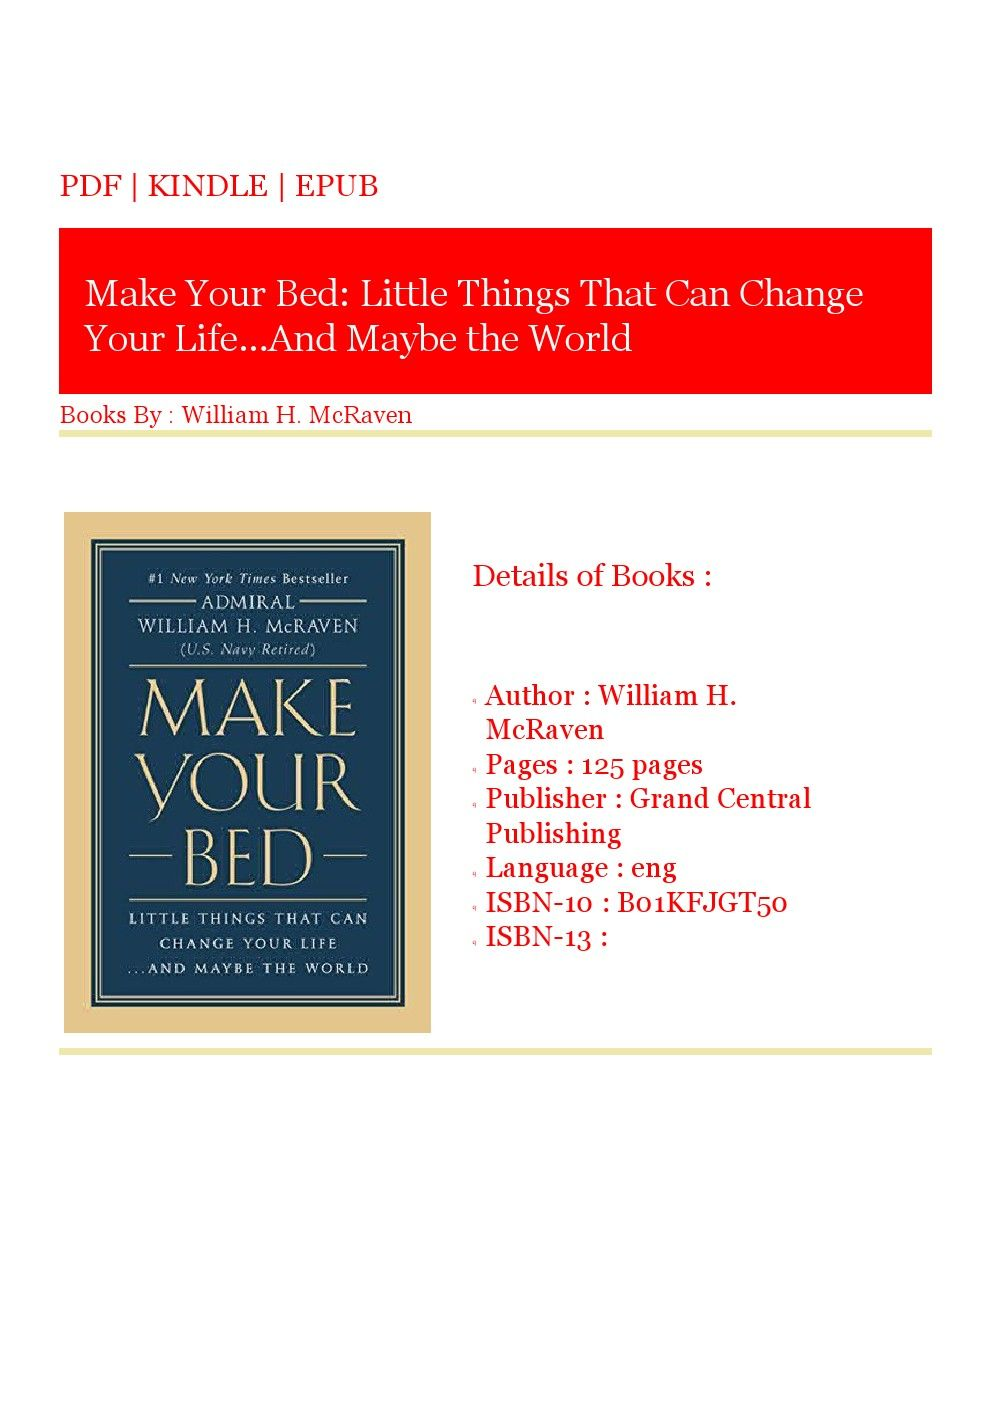 Download Ebooks Full Online Make Your Bed Little Things That Can Change Your Life And Maybe The World By William H Mcrave Make Your Bed Good Books Life